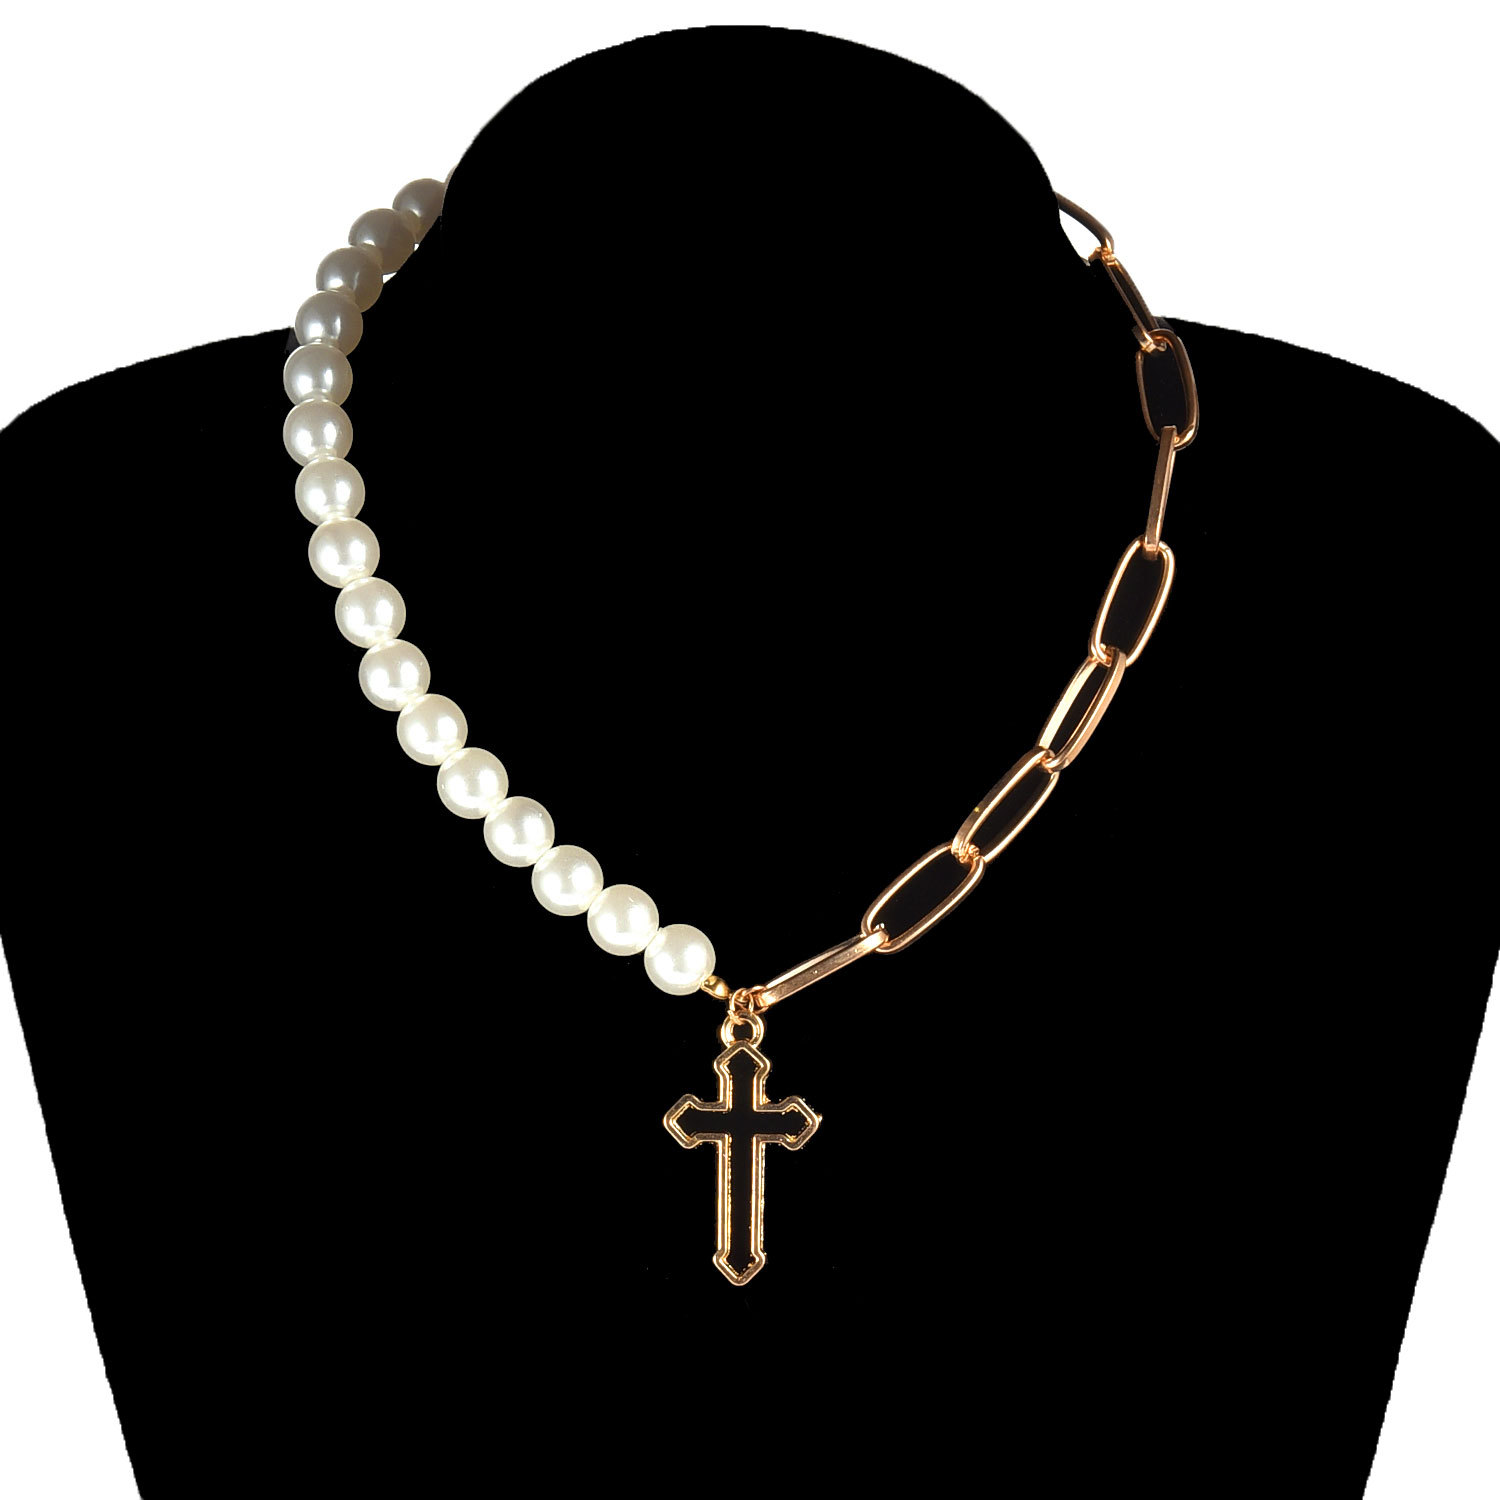 Punk Hollow Cross Pendant Necklaces for Women Gold Color Imitation Pearls Choker Clavicle Chain Fashion Jewelry Necklace Female